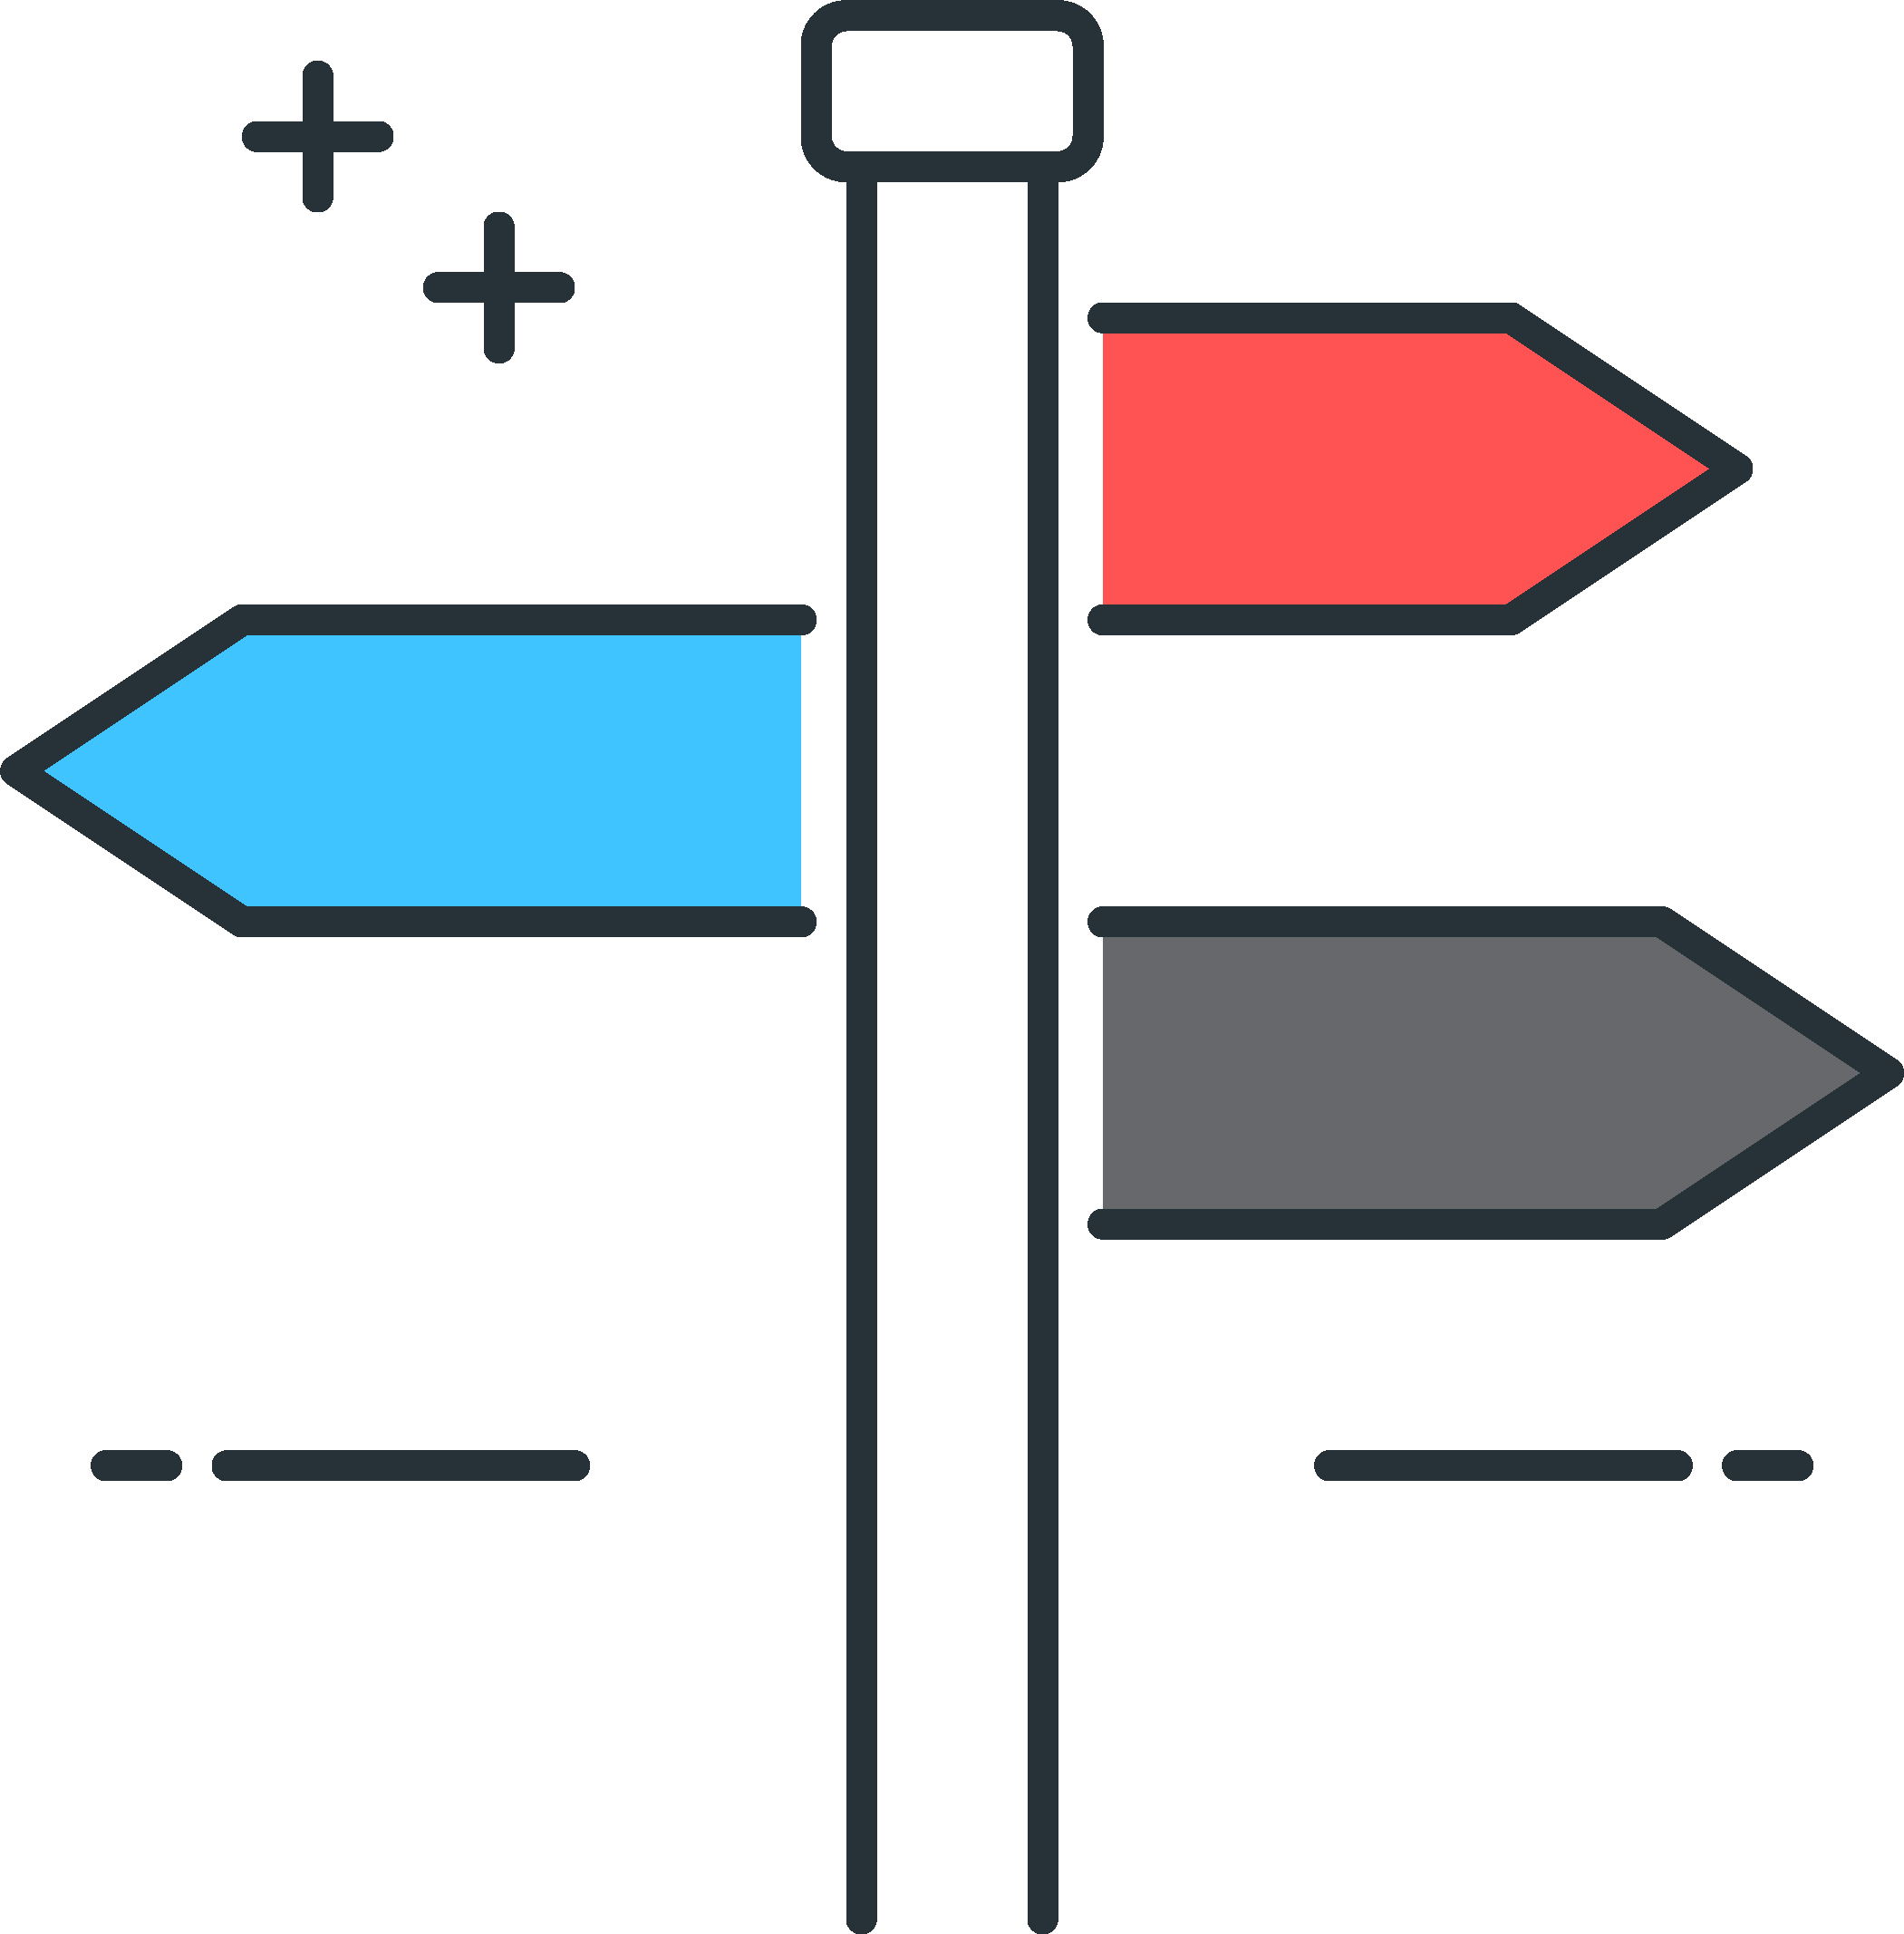 road sign illustrating fiduciary guidance